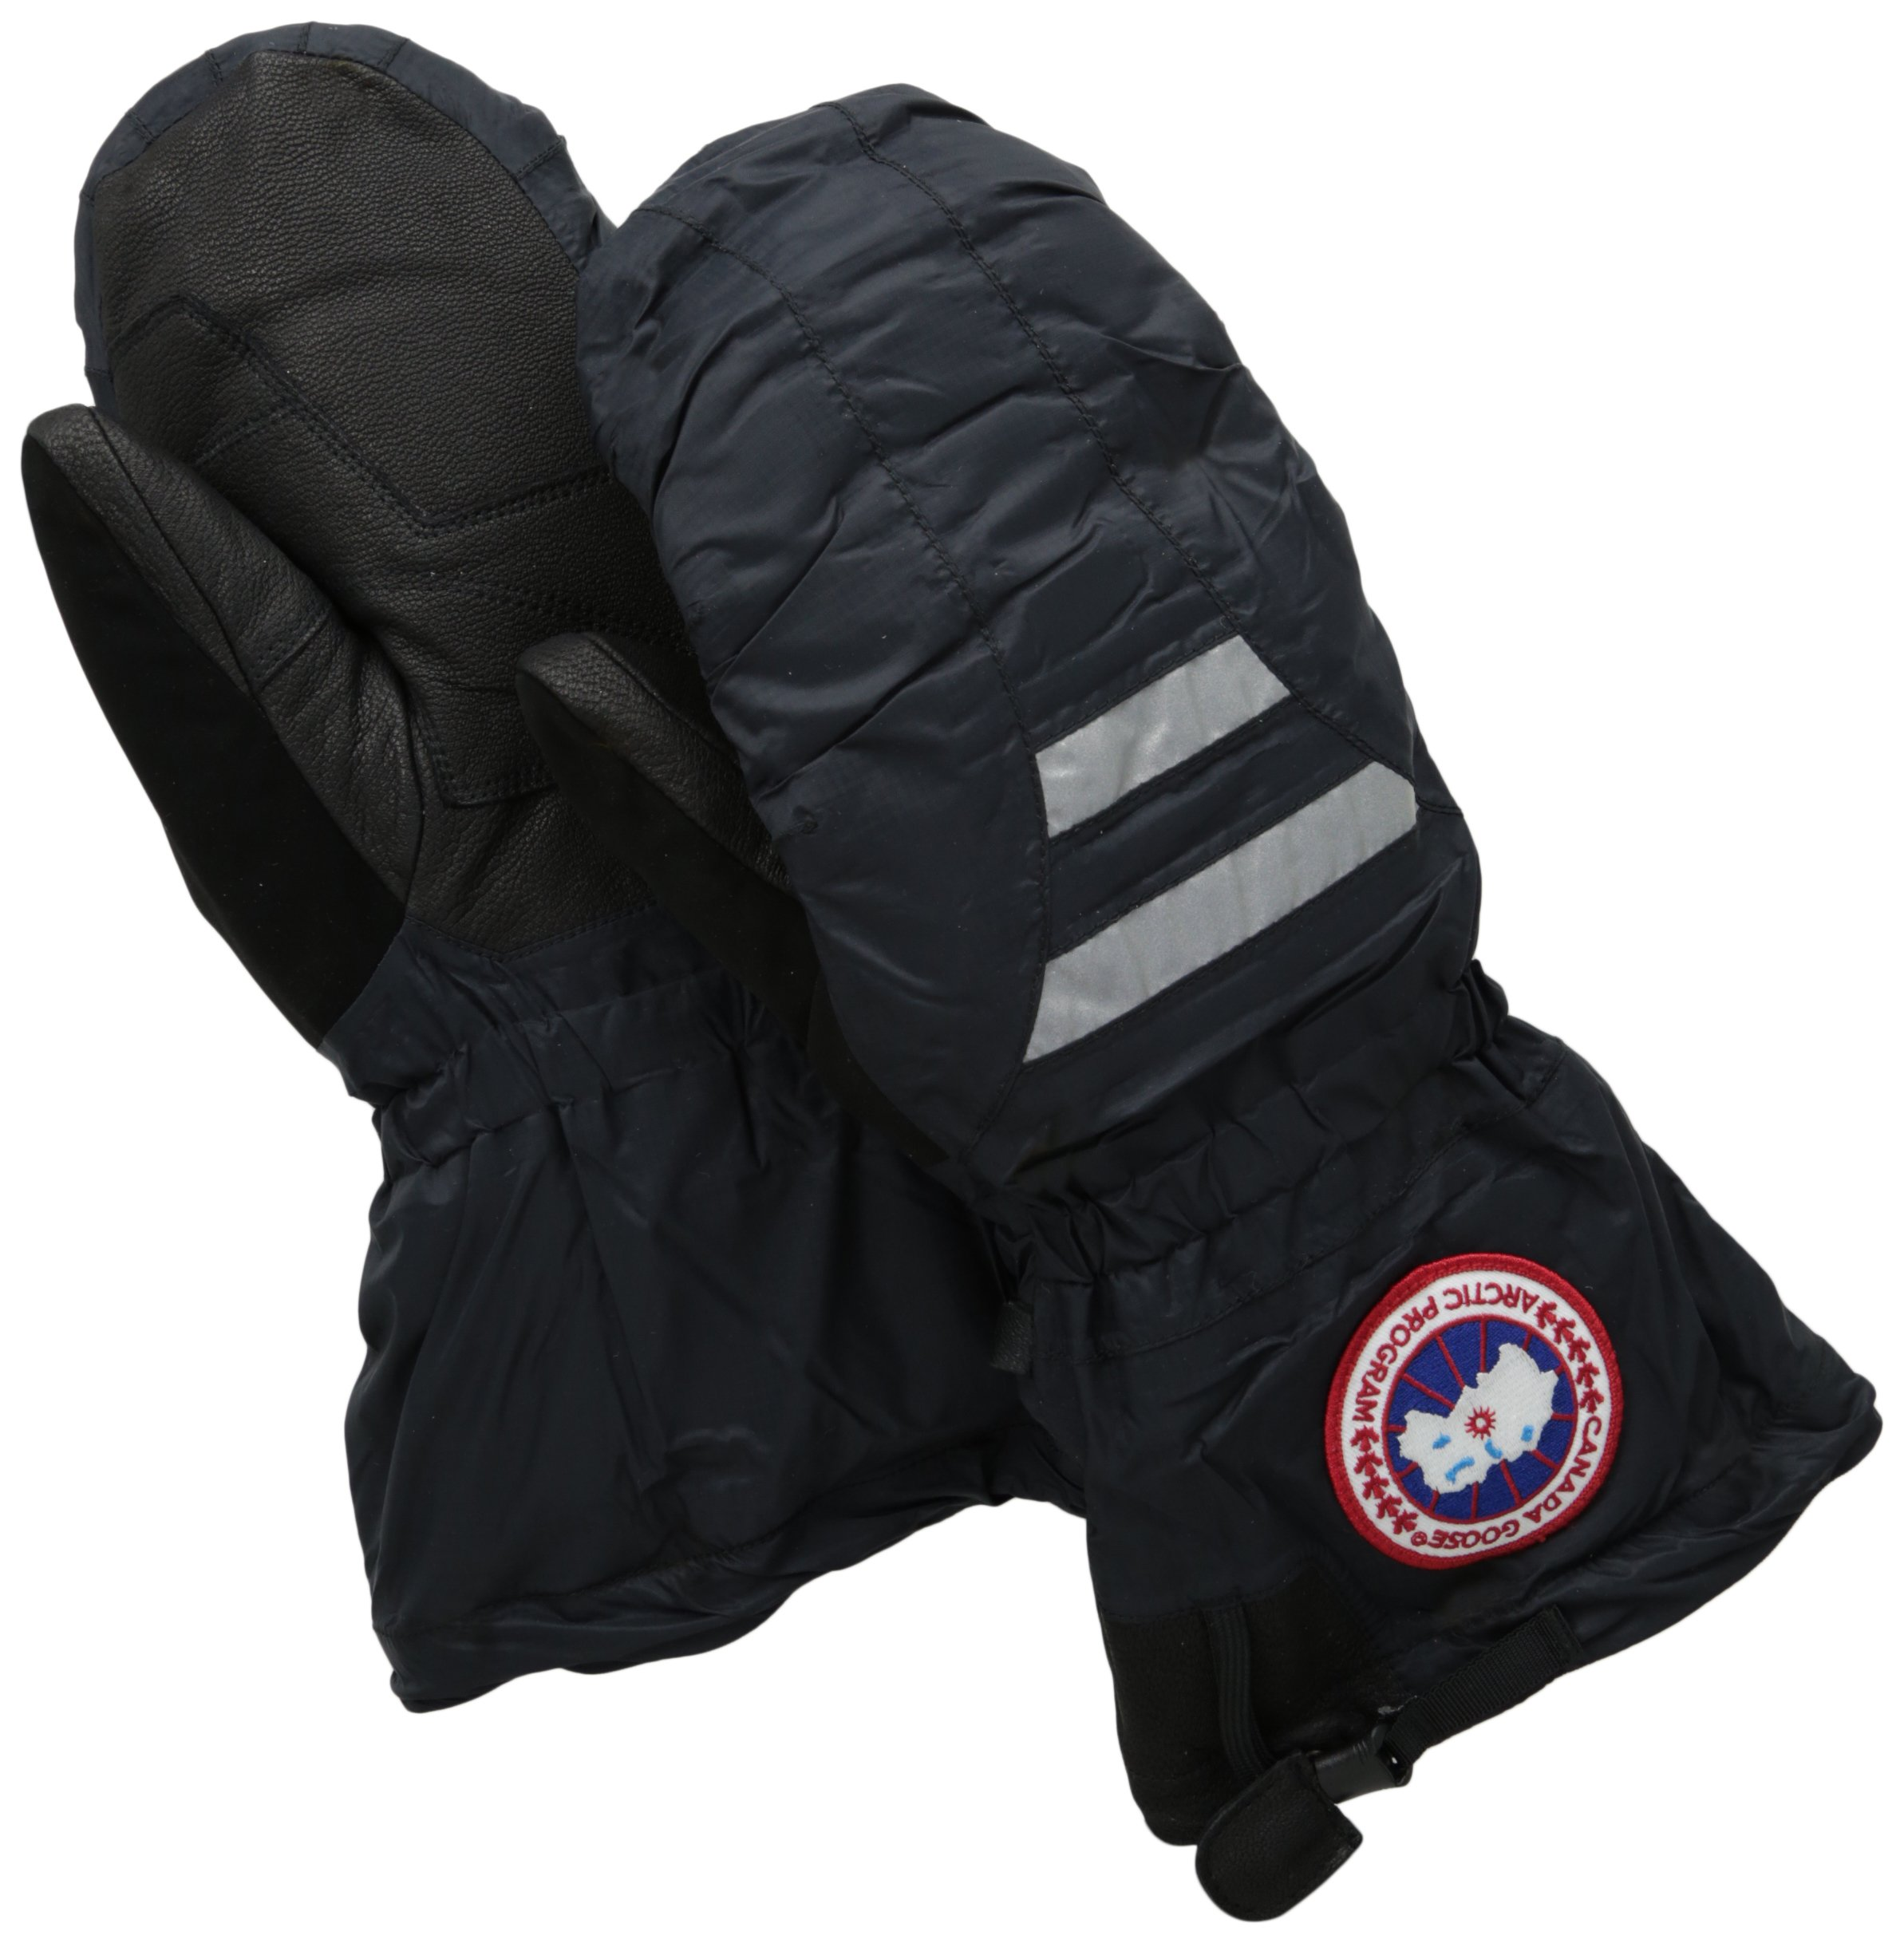 Canada Goose Men's Altitude Mitts, Black, Small by Canada Goose